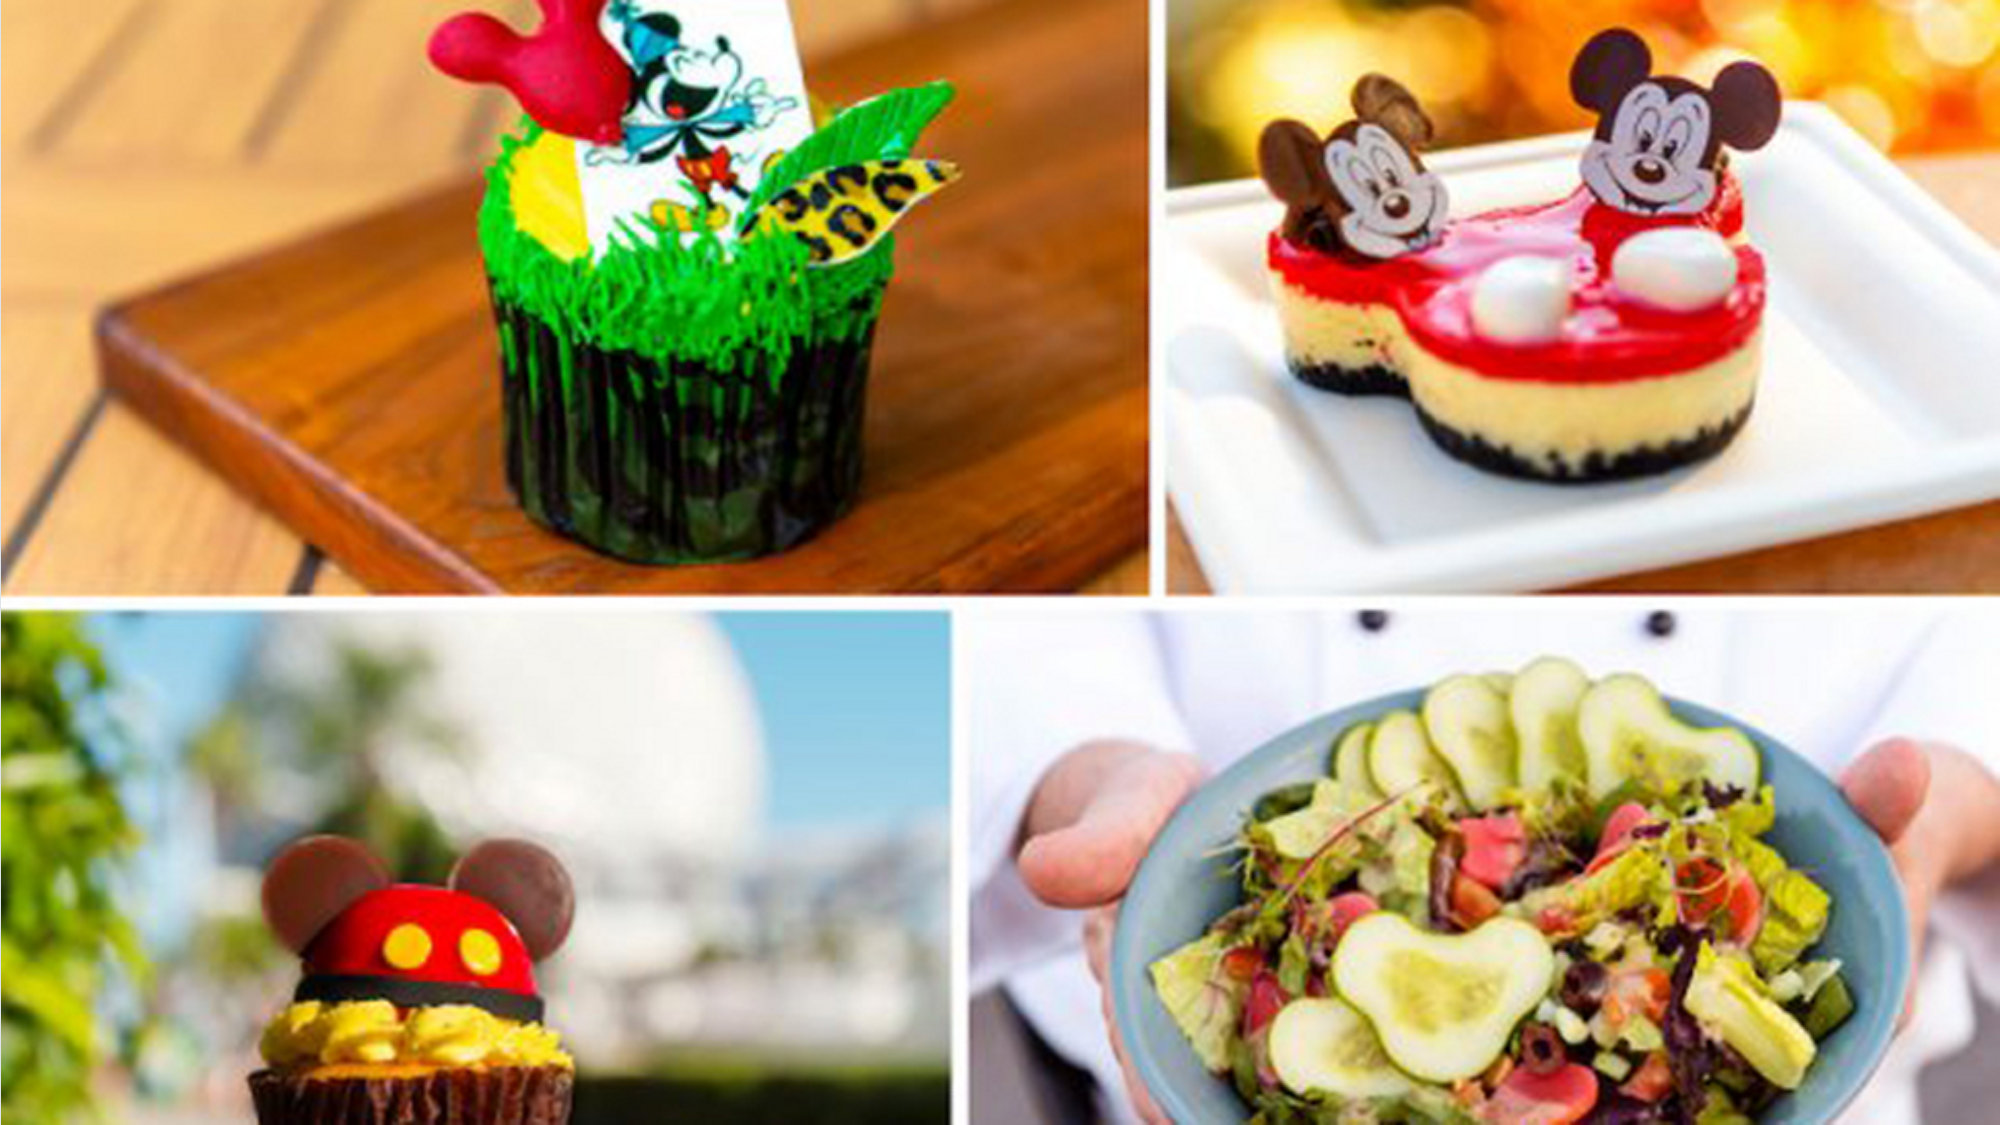 Mickey Mouse Inspired Treats Set For Disney World In Celebration Of Mickeys Birthday